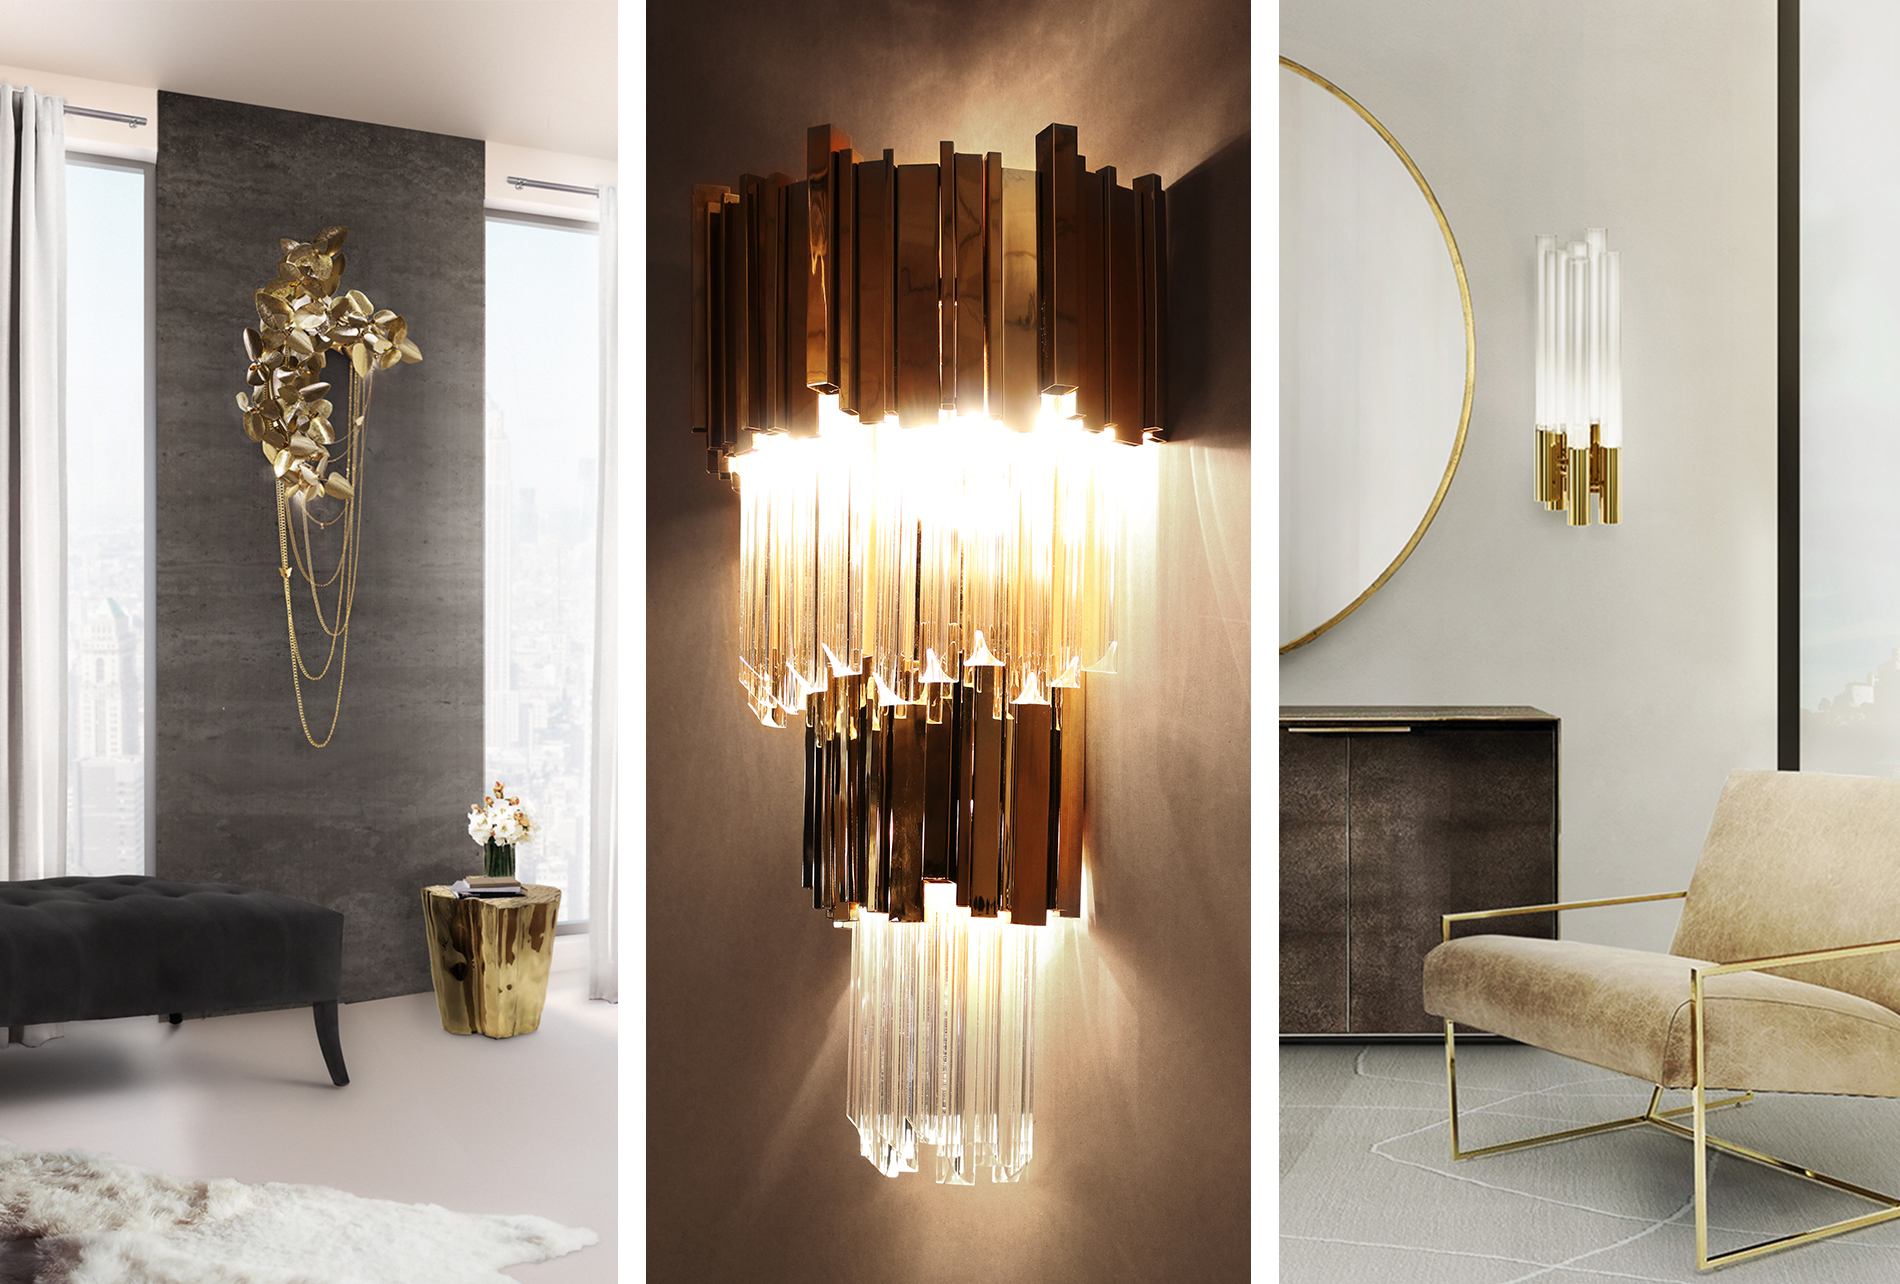 Luxury design: wall lights by Luxxu to create a glamorous decor home decoration ideas Home Decoration Ideas: 10 Ostentatious Mirrors for a Unique Aesthetic Luxxu Wall Lamps home decoration ideas Home Decoration Ideas: 10 Ostentatious Mirrors for a Unique Aesthetic Luxxu Wall Lamps